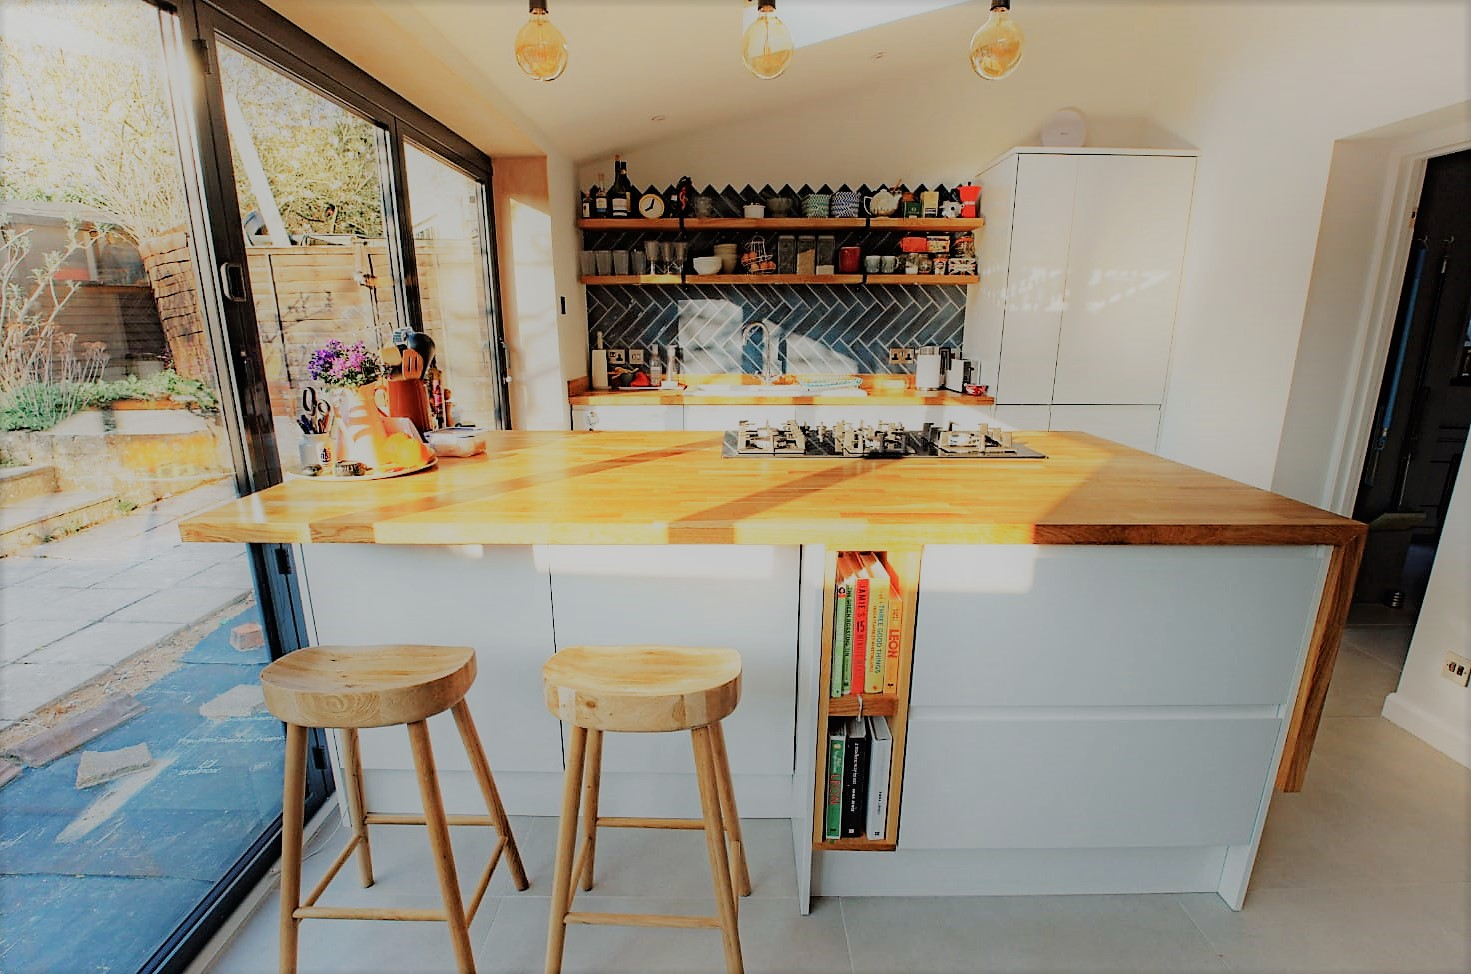 Single storey kitchen extension with bi-folds